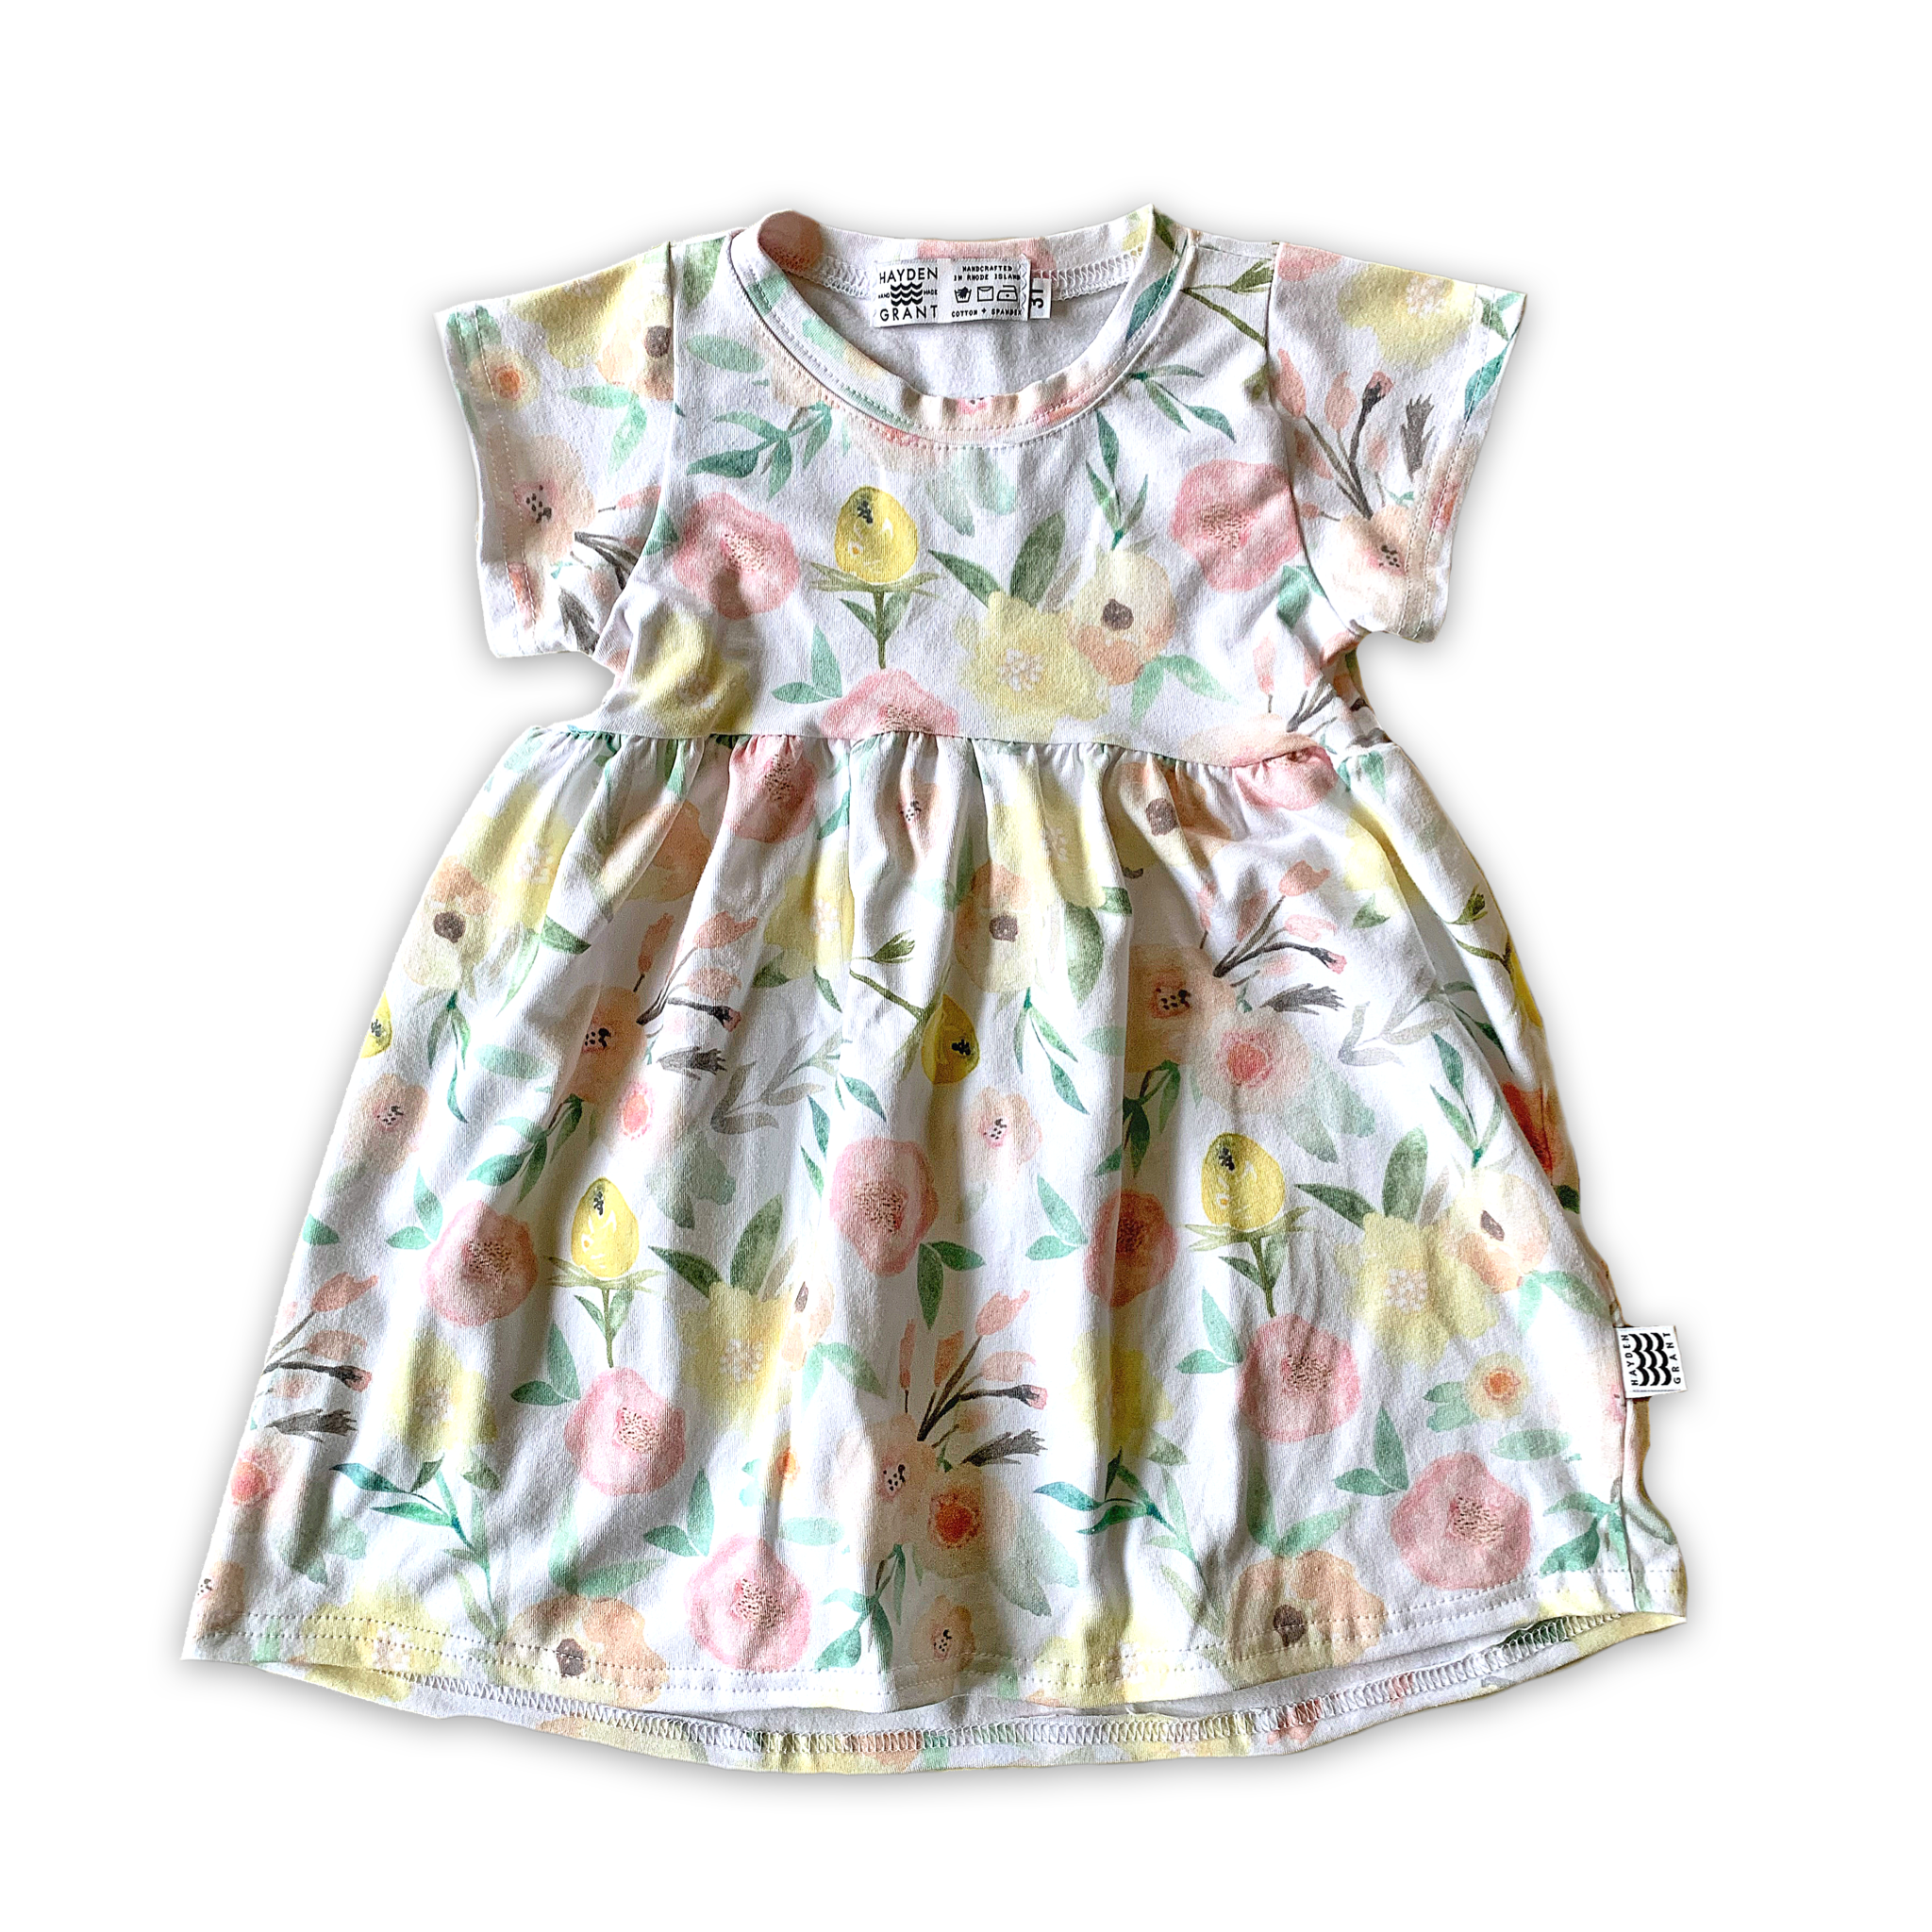 Peplum Twirl Dress in Fresh Blooms (choice of sleeve length)